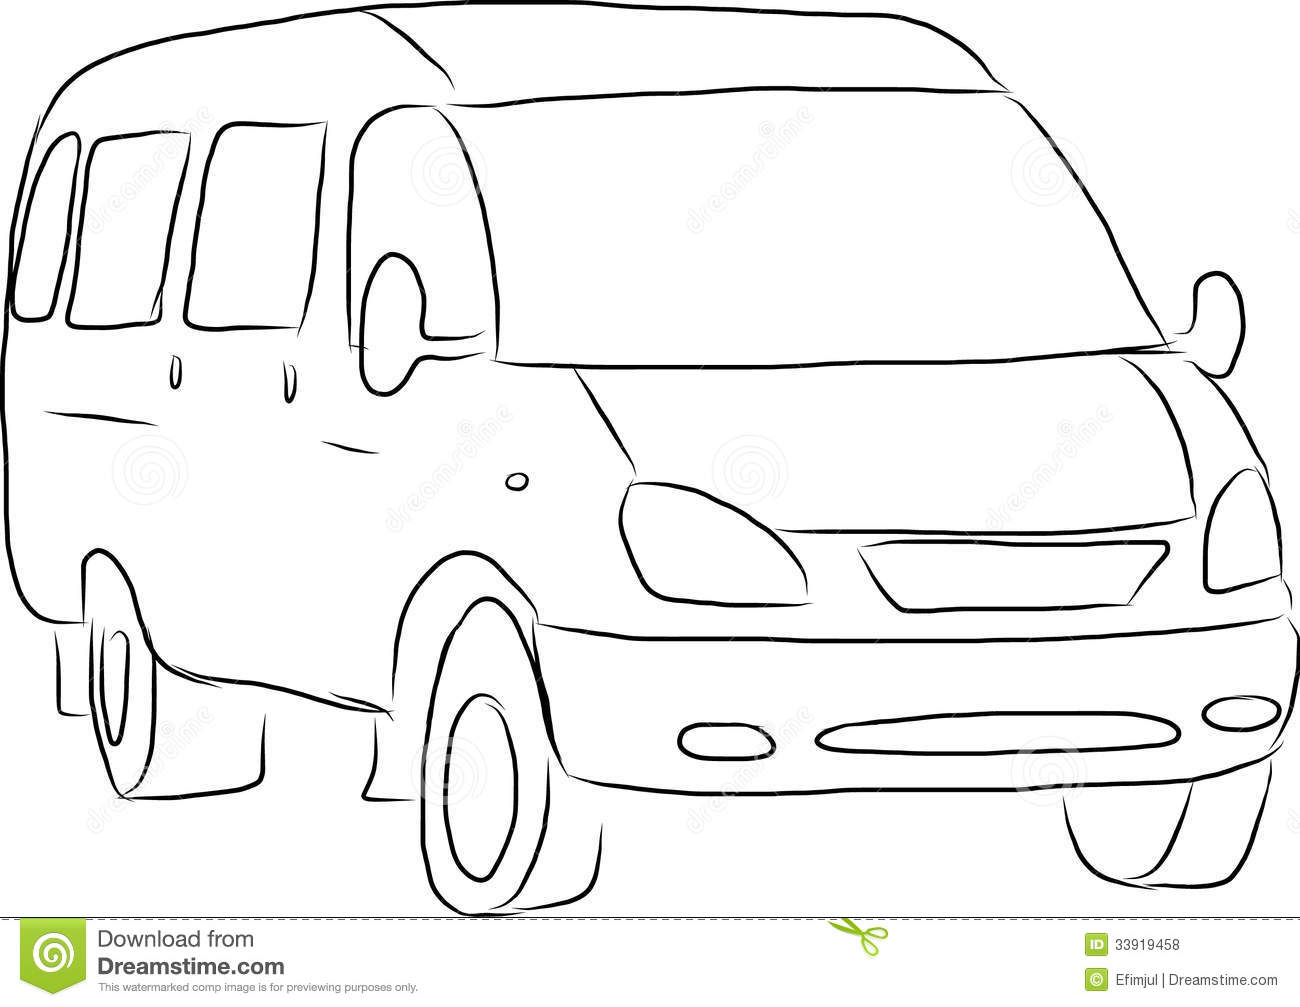 Sketch of a minibus royalty free stock photos image for Sketch online free